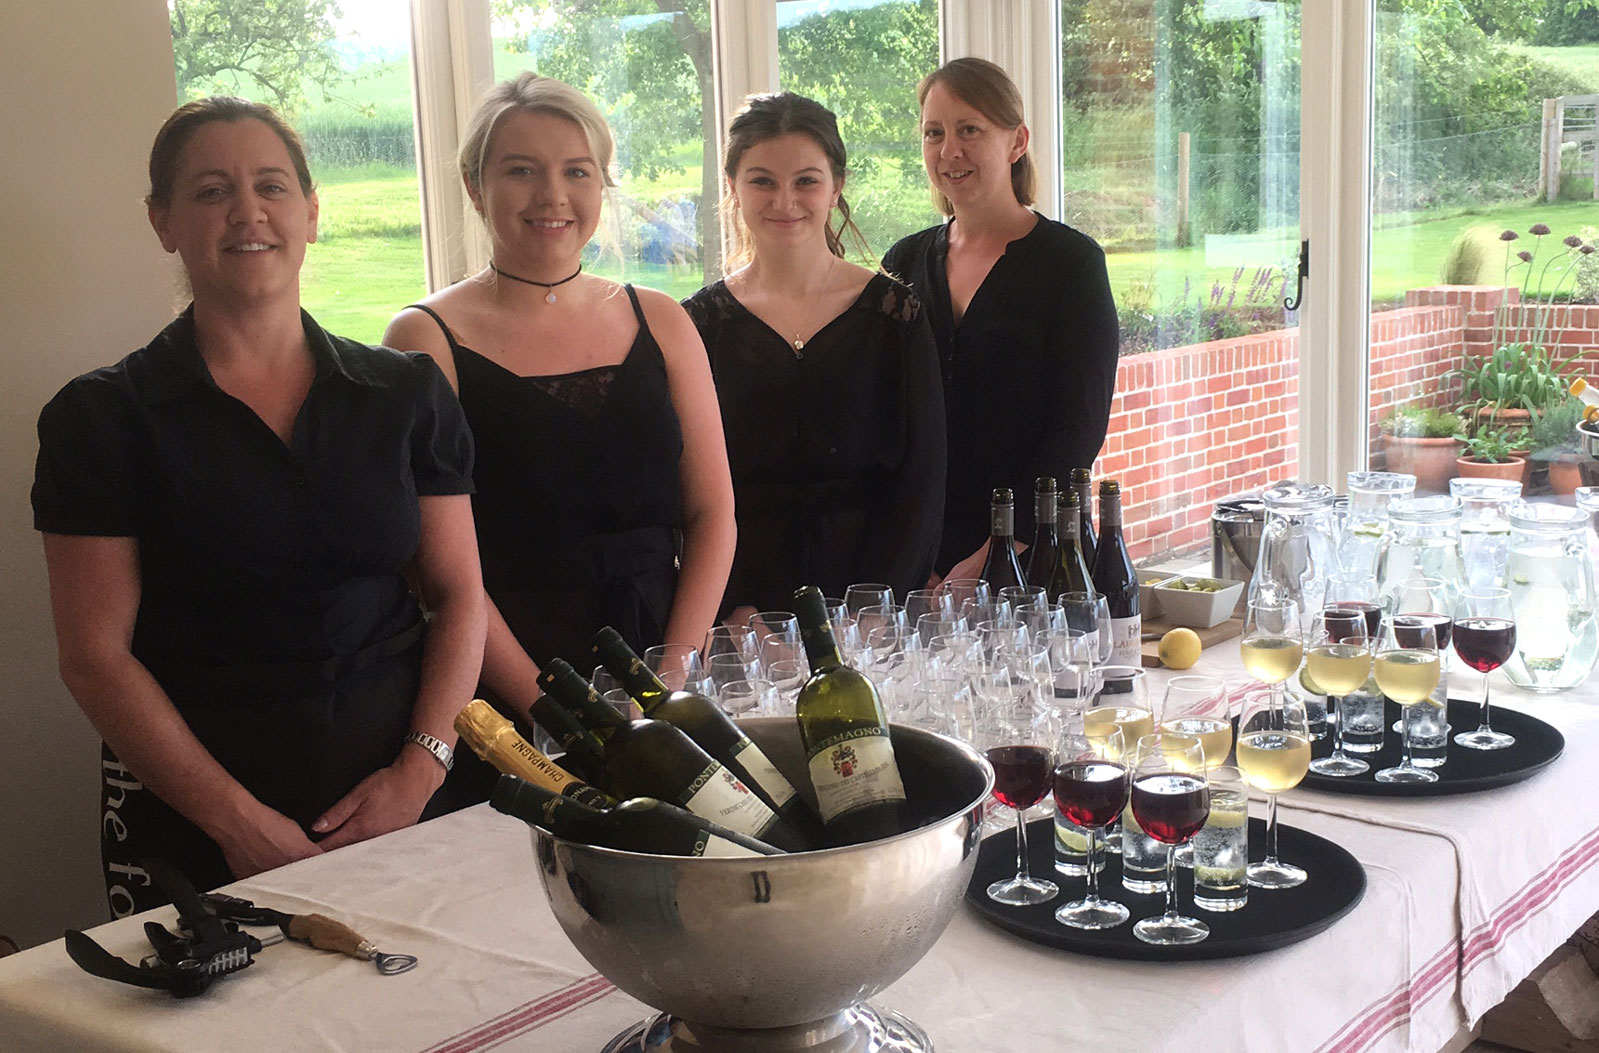 The Food Station catering staff - The Food Station - event catering and equipment hire, Suffolk